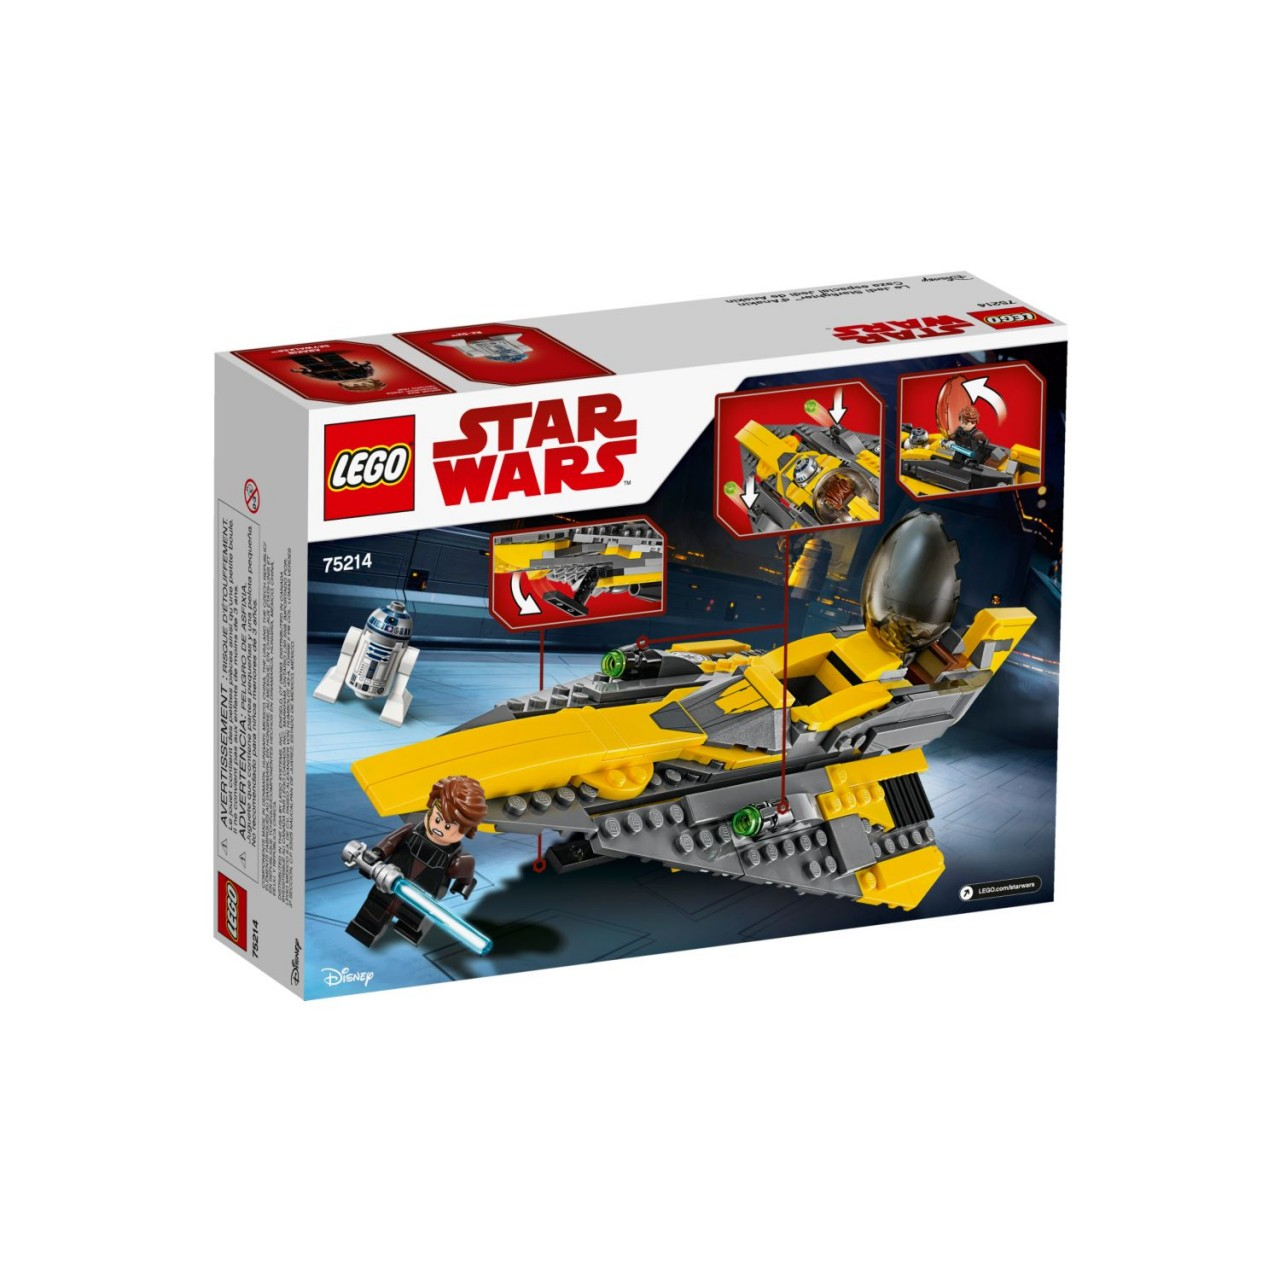 LEGO STAR WARS 75214 Anakin's Jedi Starfighter